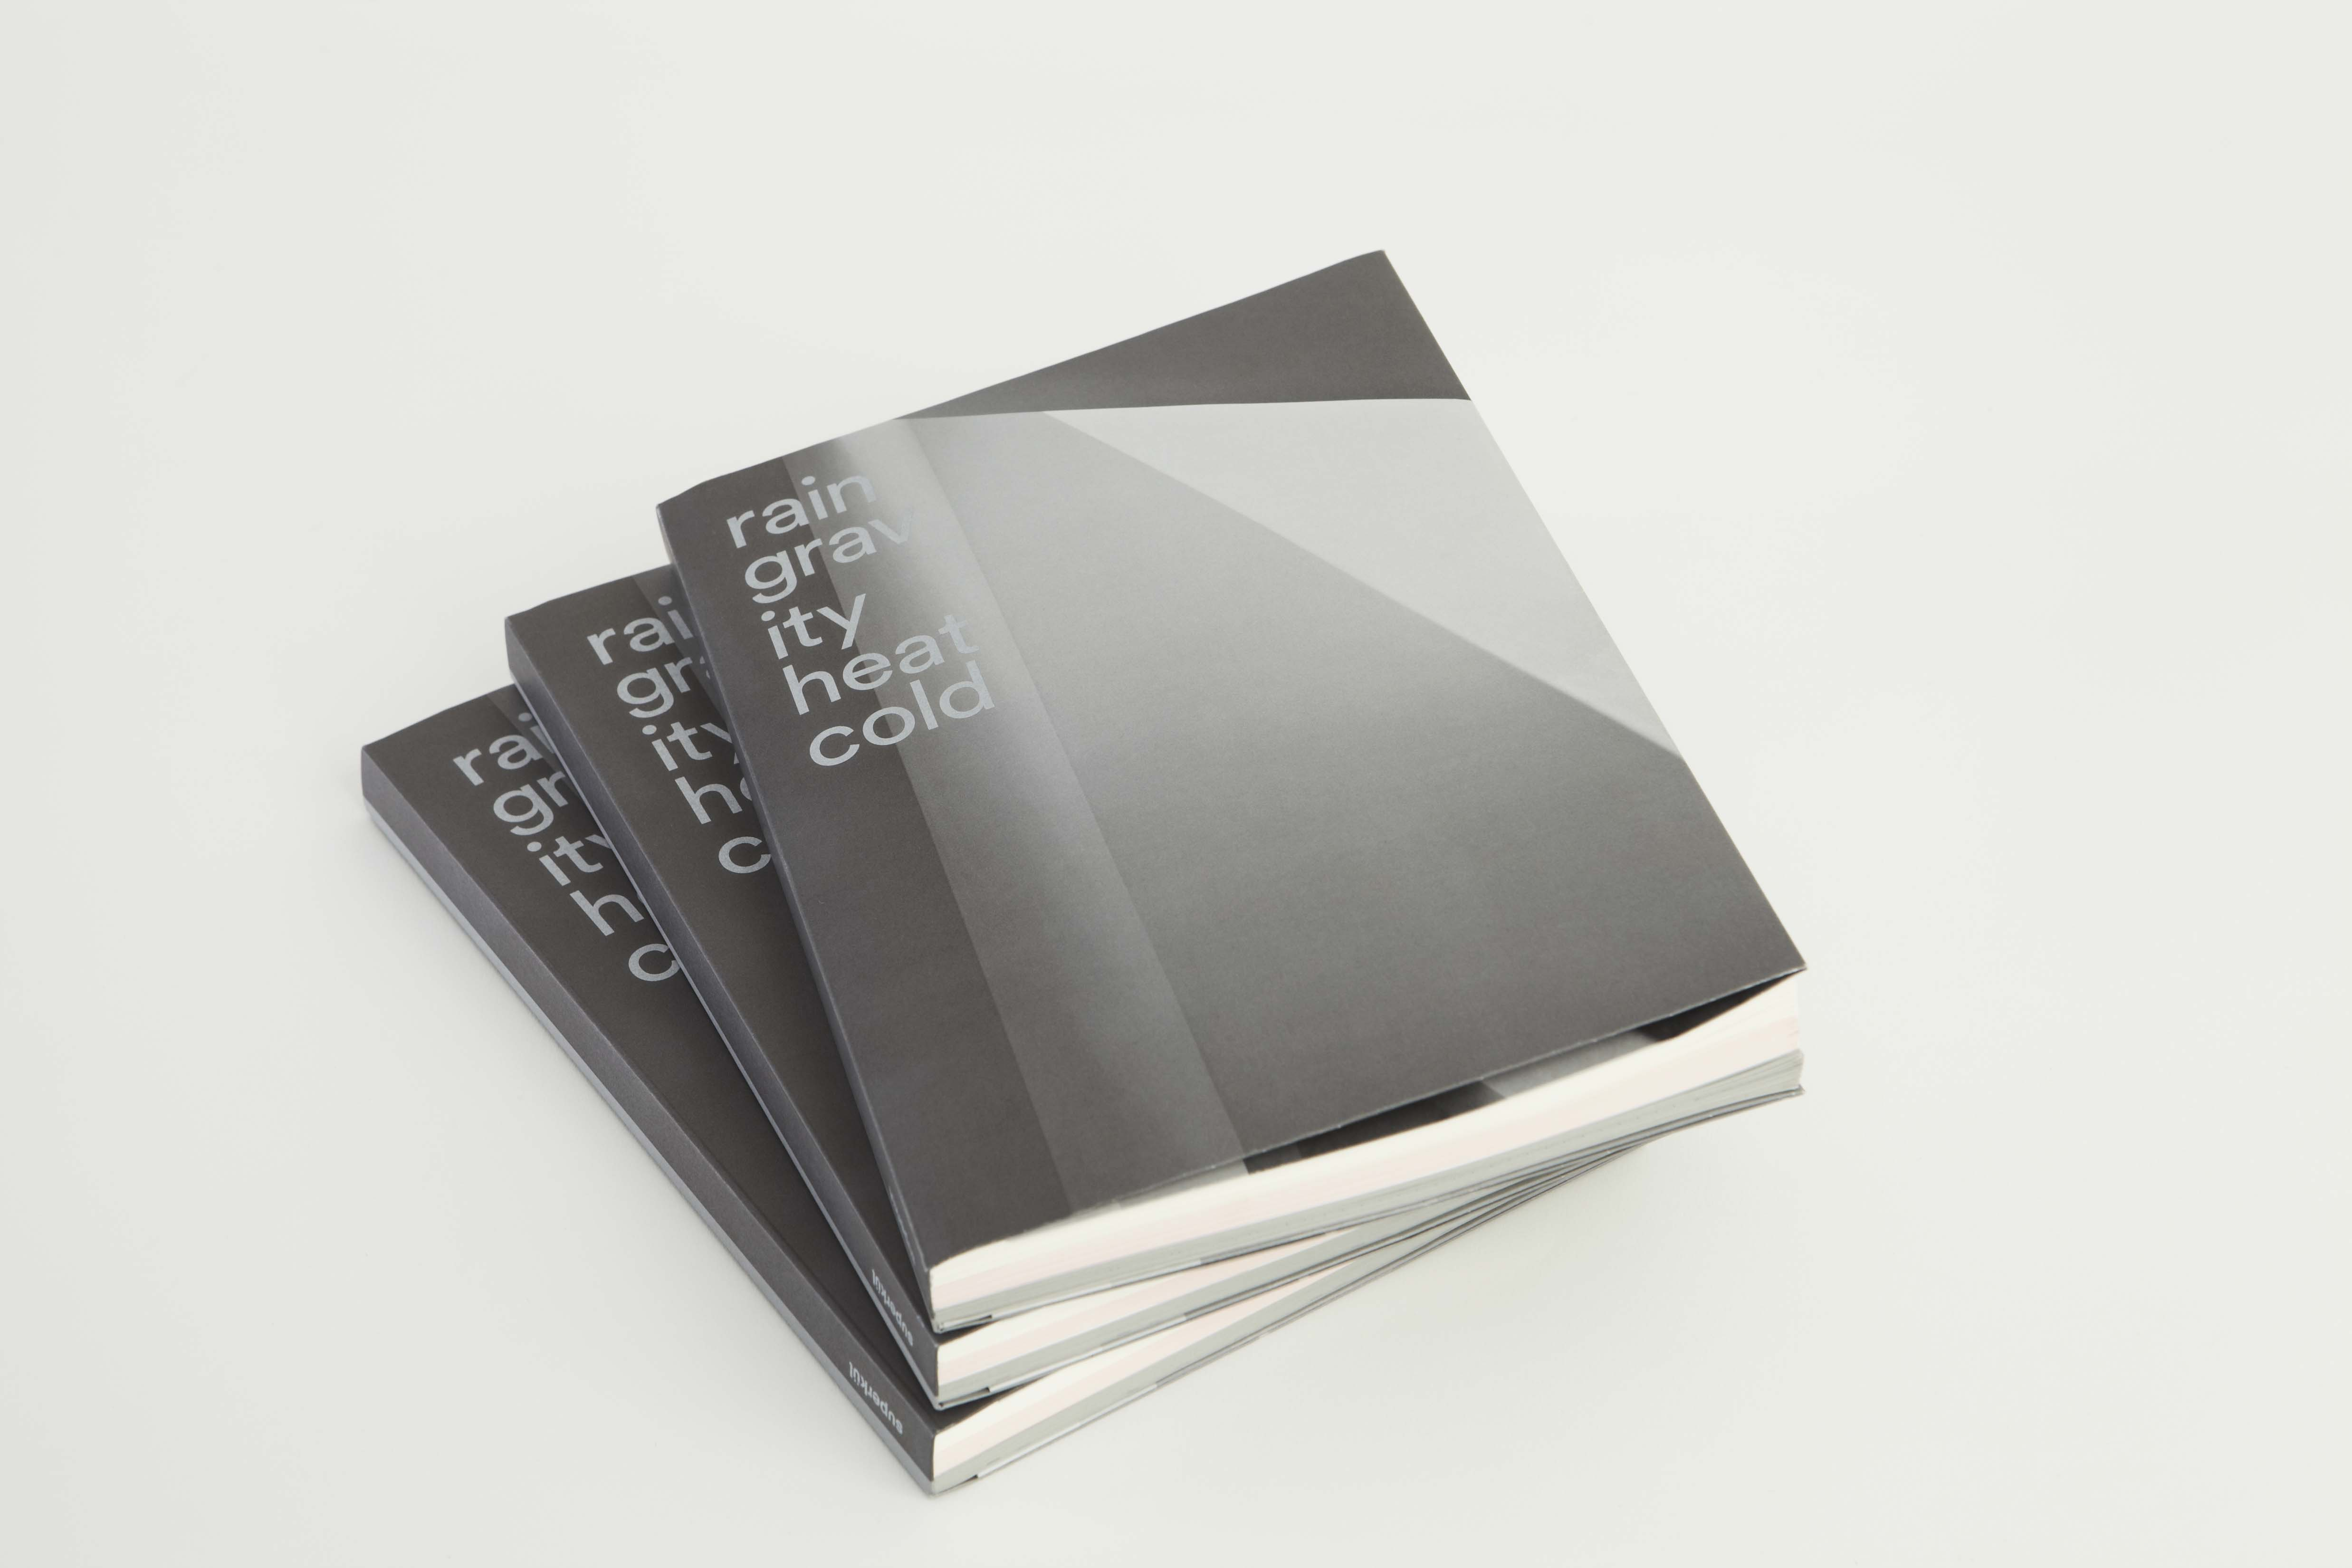 superkül's newly released monograph, Rain, Gravity Heat, Cold